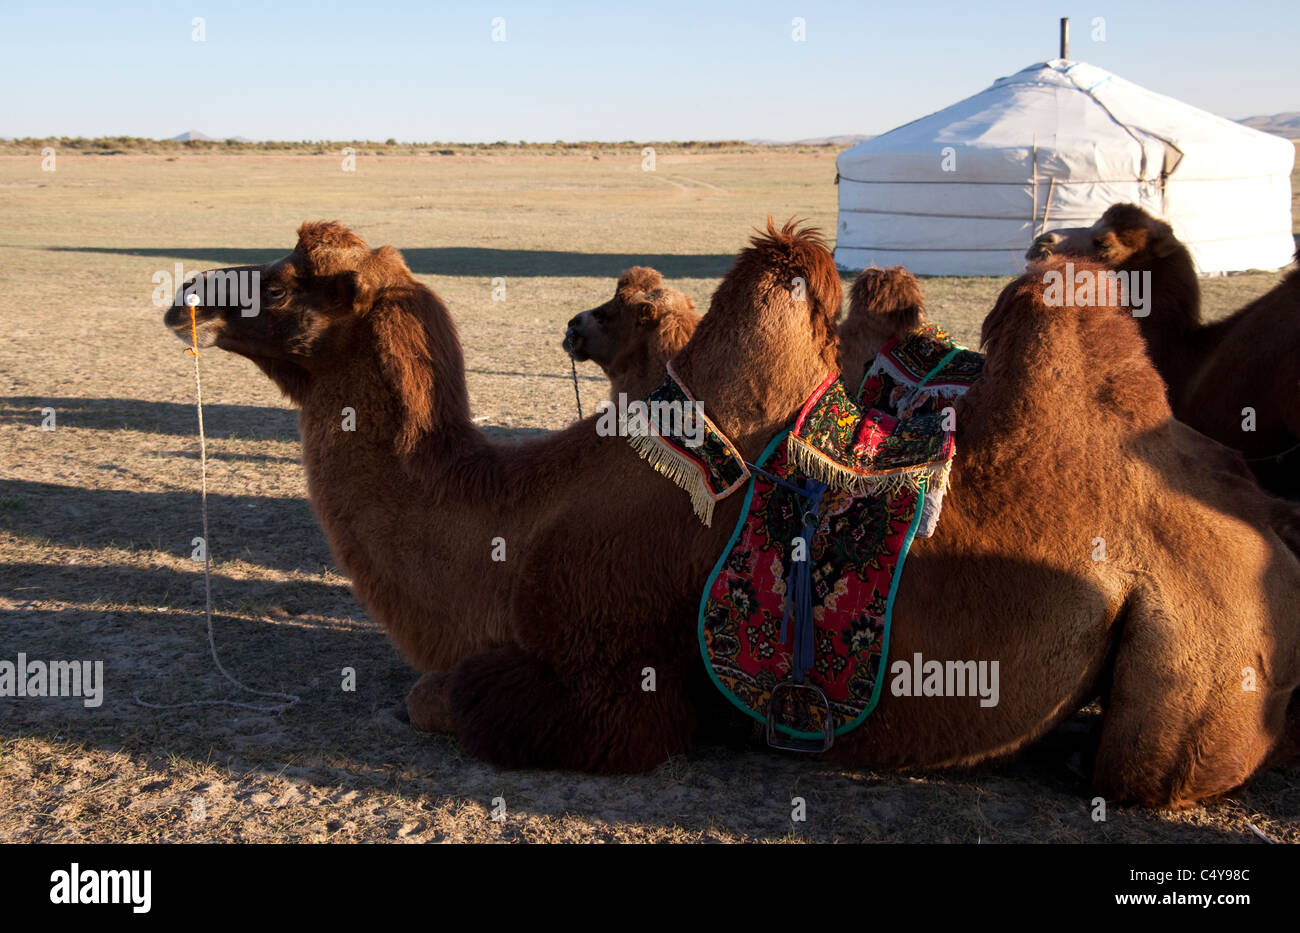 Two Humped Bactrian Camel